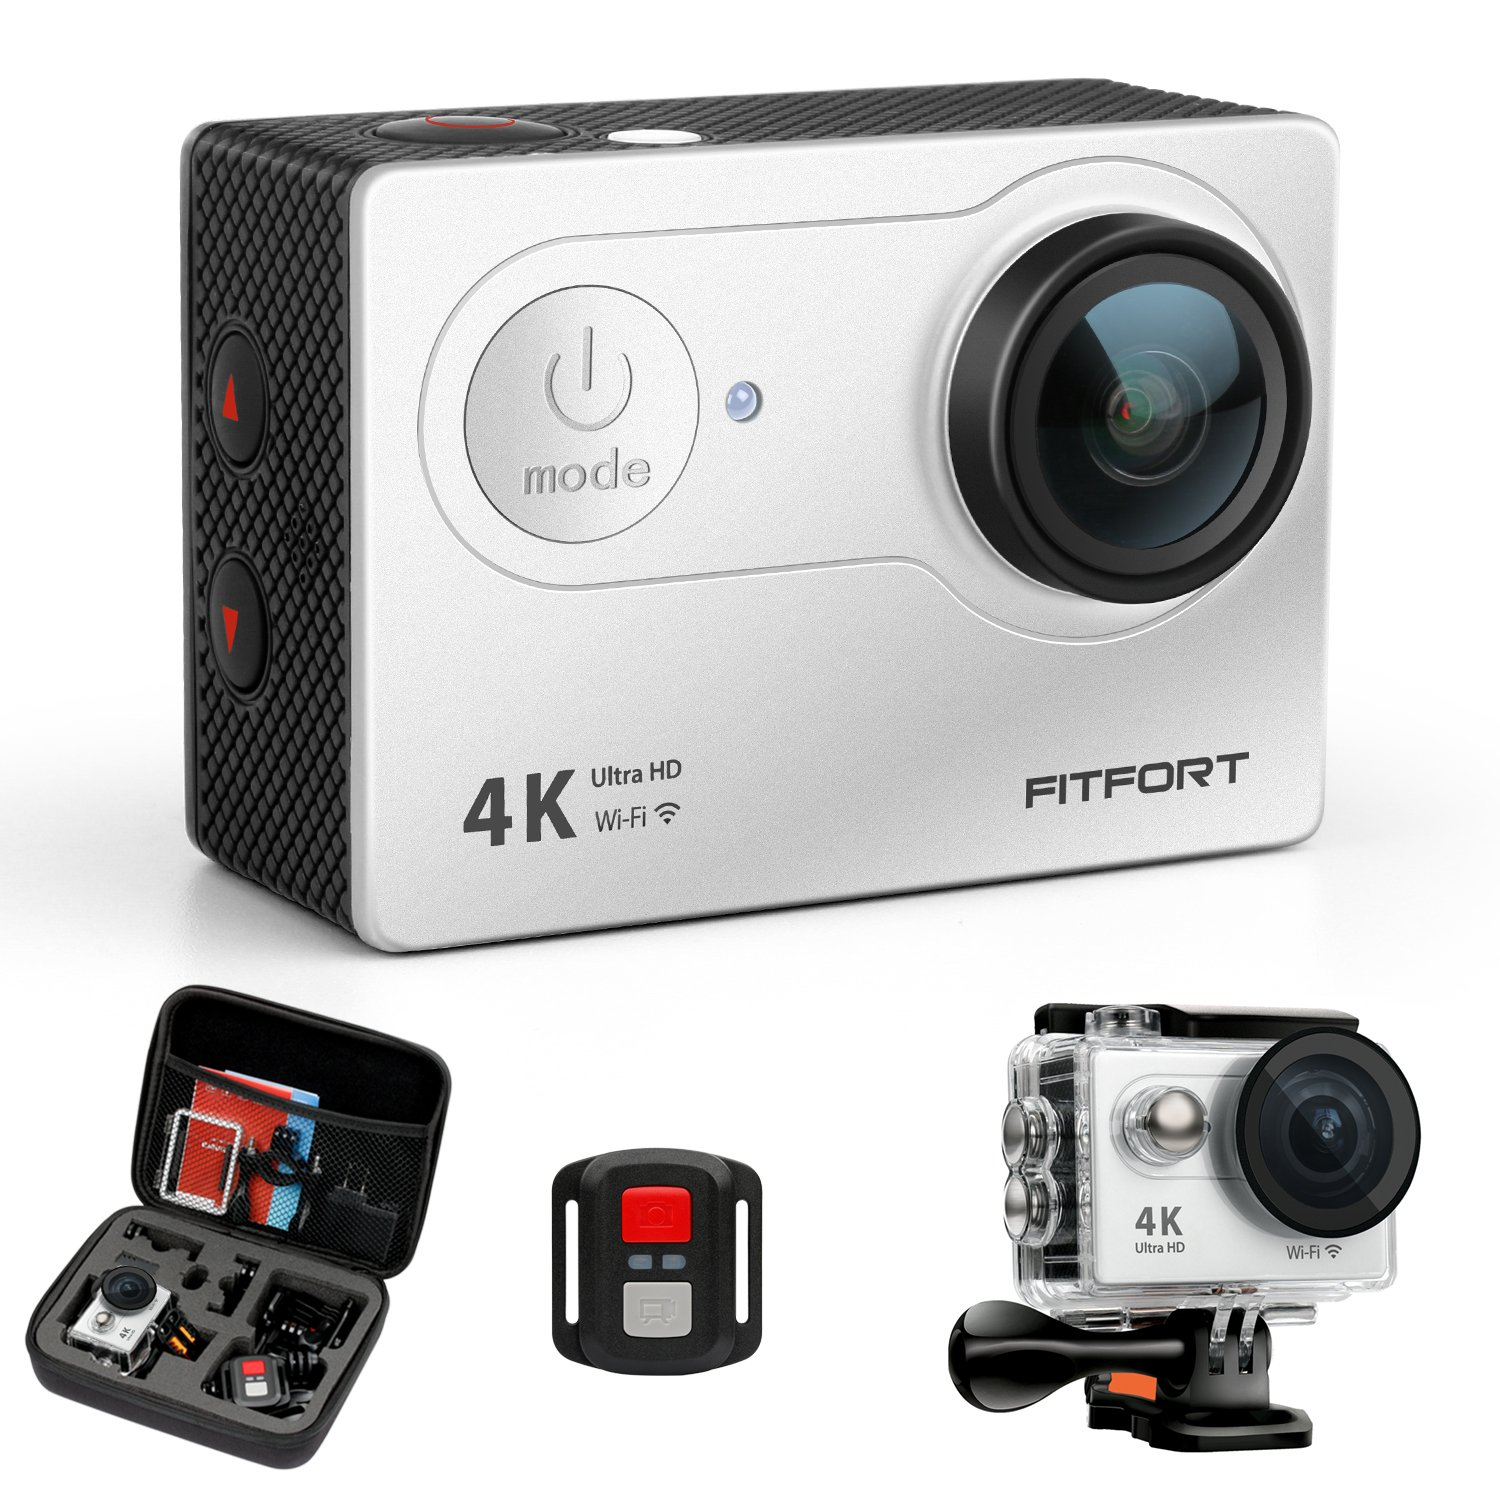 FITFORT Action Camera 4K WiFi Ultra HD Waterproof Sport Camera 12 MP 170 Degree 2 Inch LCD Screen Remote Control 2Pcs Batteries 19 Accessories -Silver by FITFORT